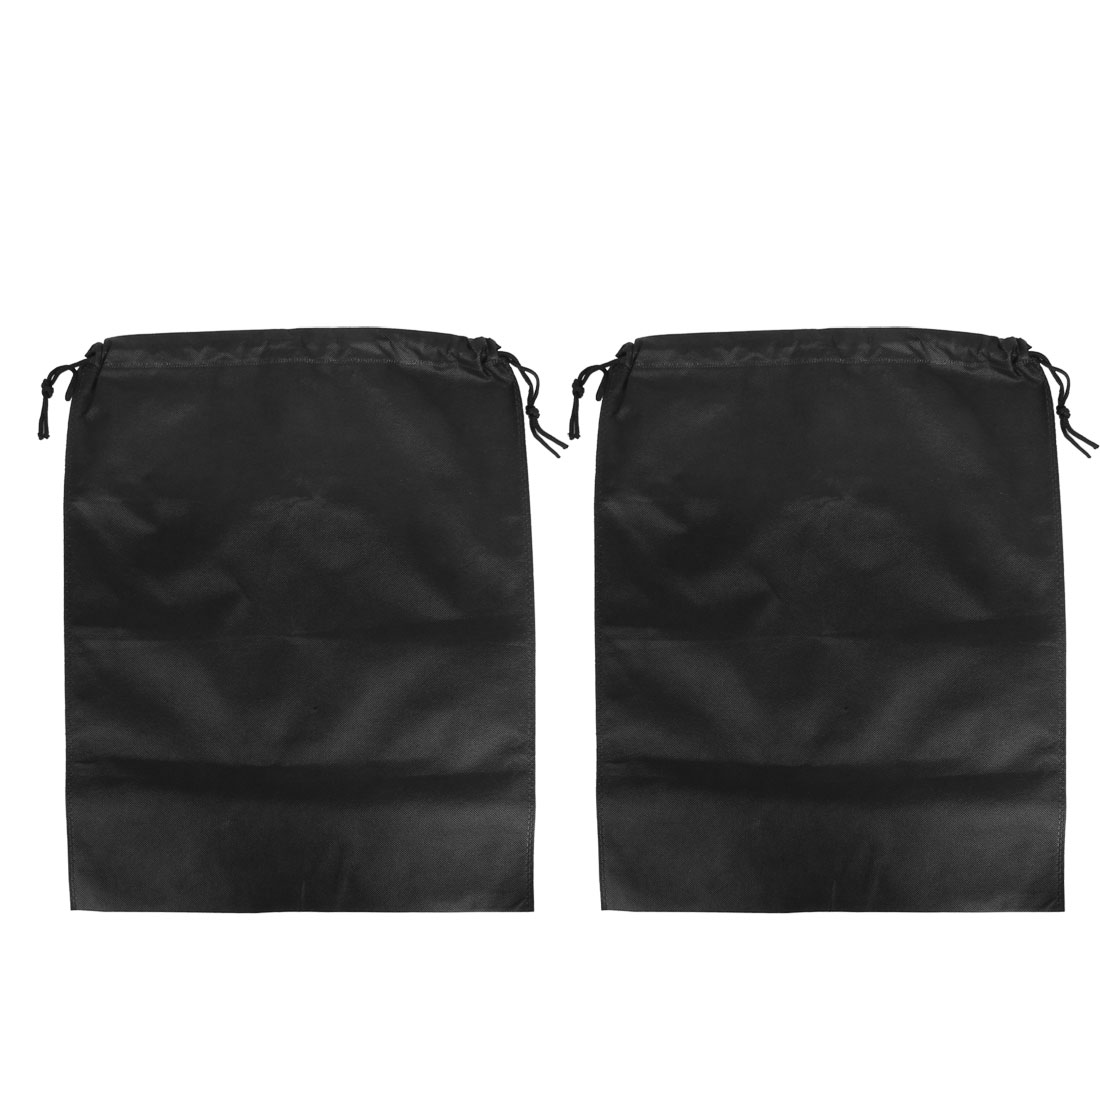 Traveling Foldable Clothes Storage Drawstring Bags 55 x 45cm Black 2pcs